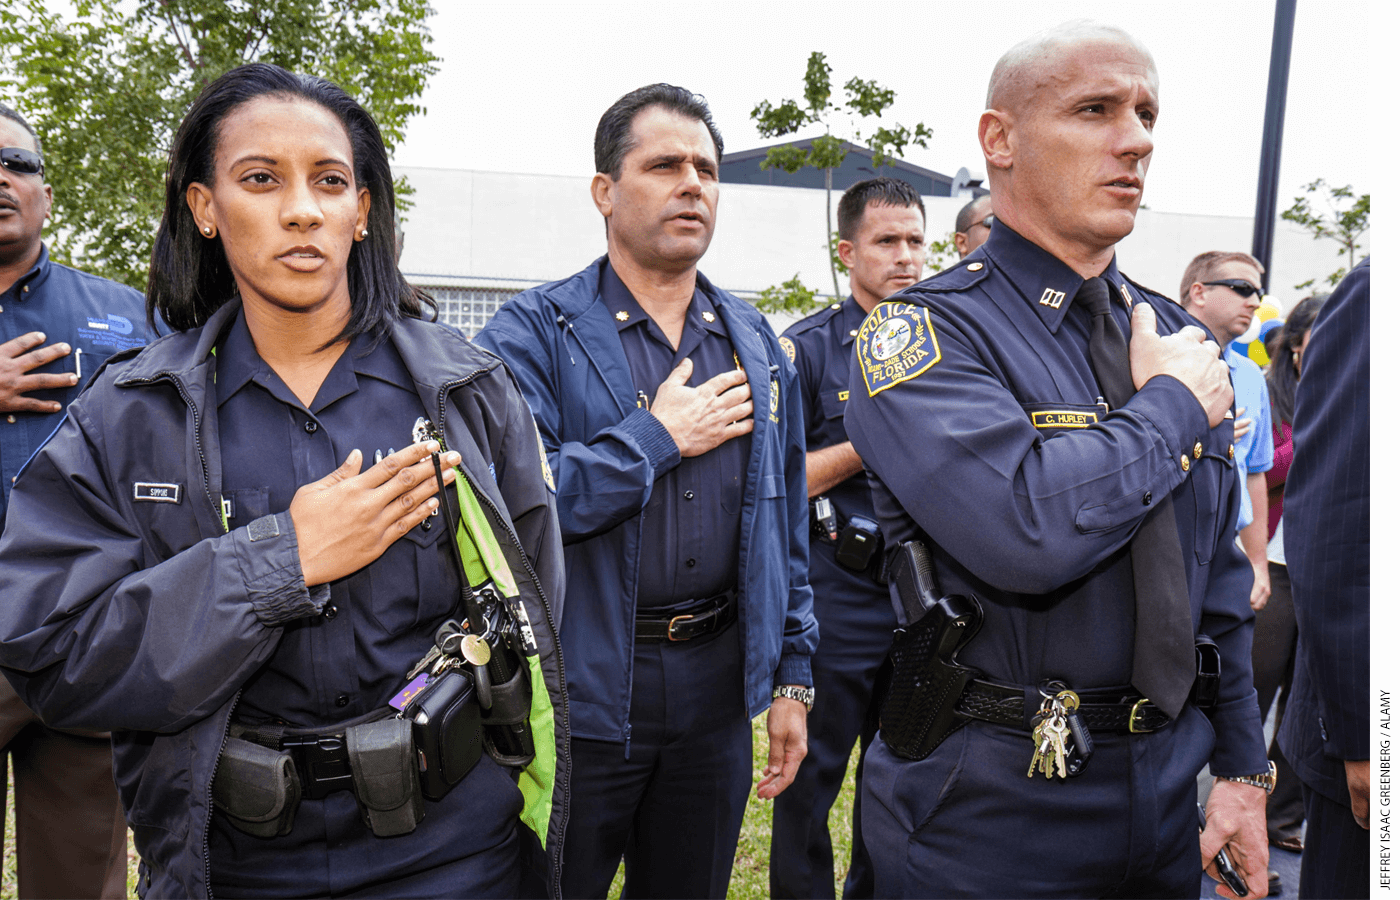 Seventy percent of Americans grade their local police force with an A or a B. Local schools are rated lower, with 55 percent of the public awarding them an A or a B.